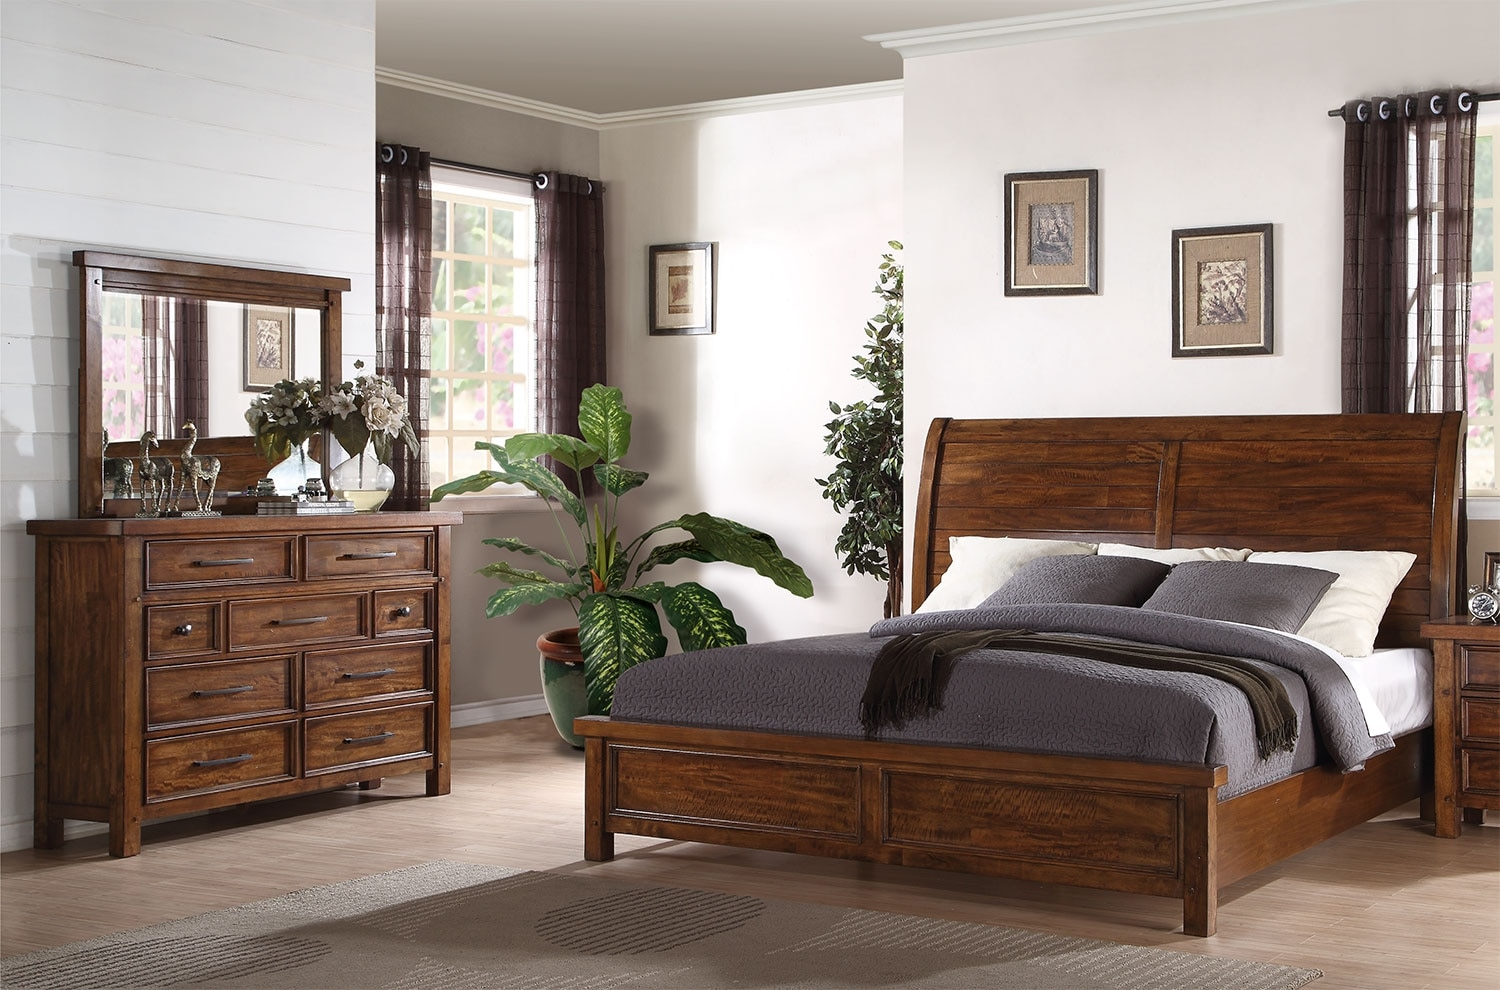 Bedroom Furniture - Sonoma 5-Piece King Bedroom Package – Light Brown